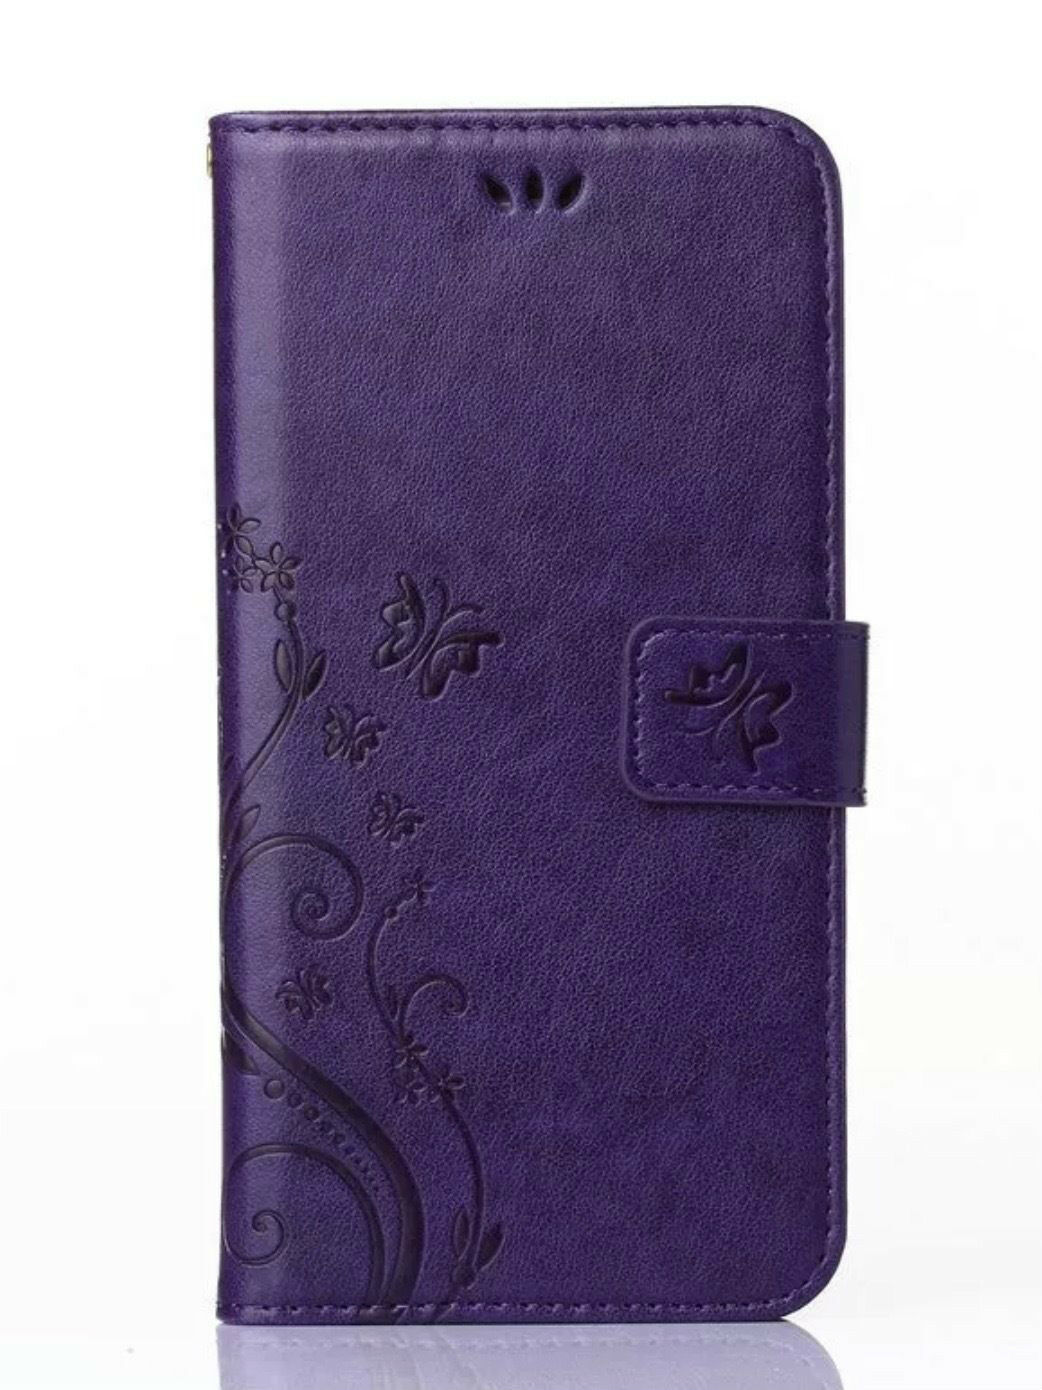 Luxury Magnetic Cover Stand Wallet Leather Case Cover For iPhone 6/6S/7/Plus